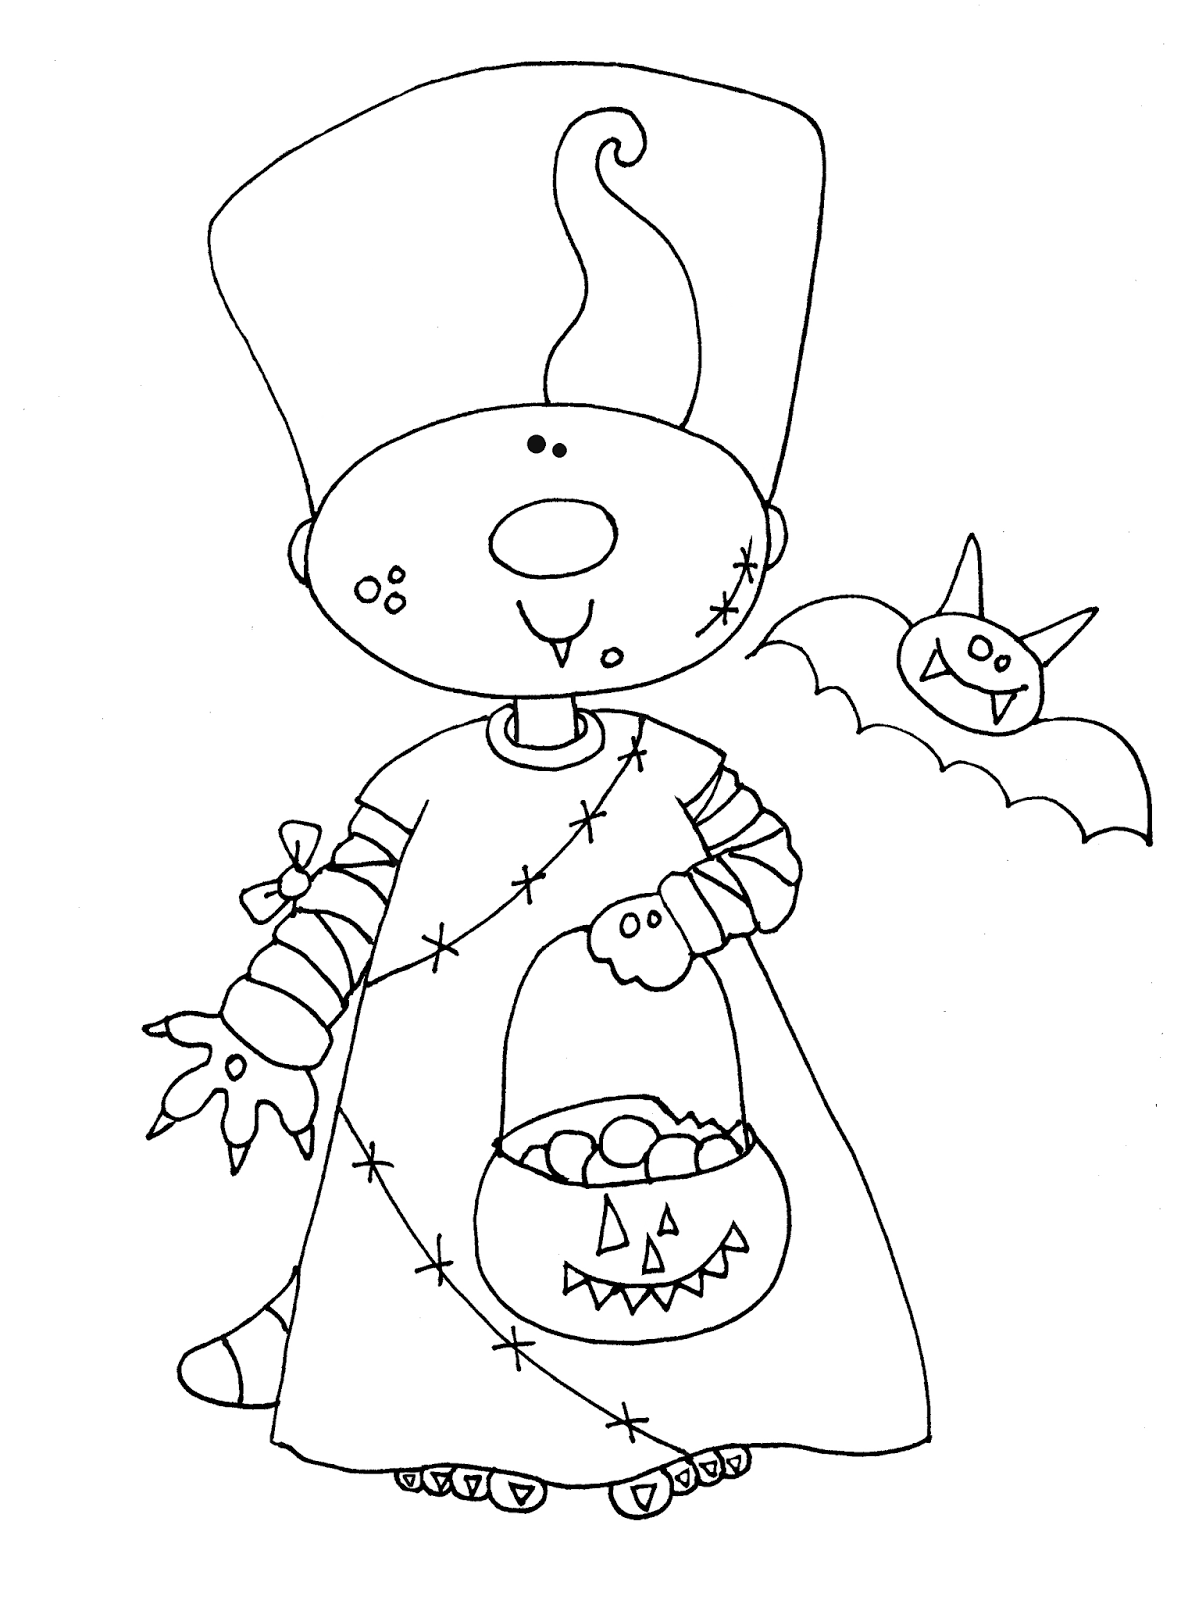 Free Dearie Dolls Digi Stamps: Ready to get a head start on ...